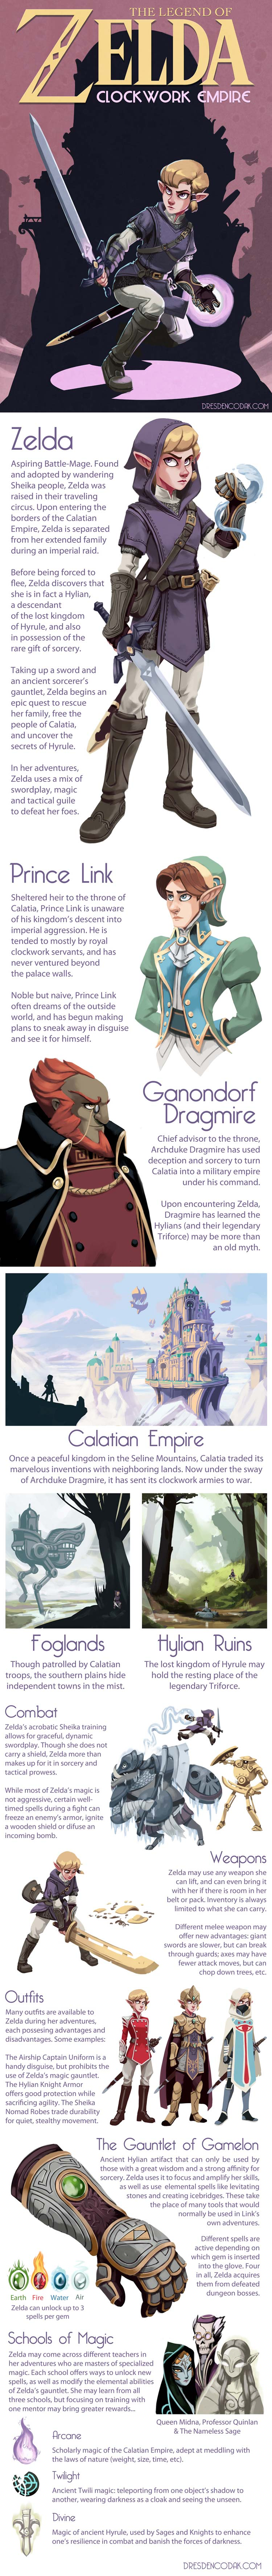 The Legend of Zelda: Clockwork Empire